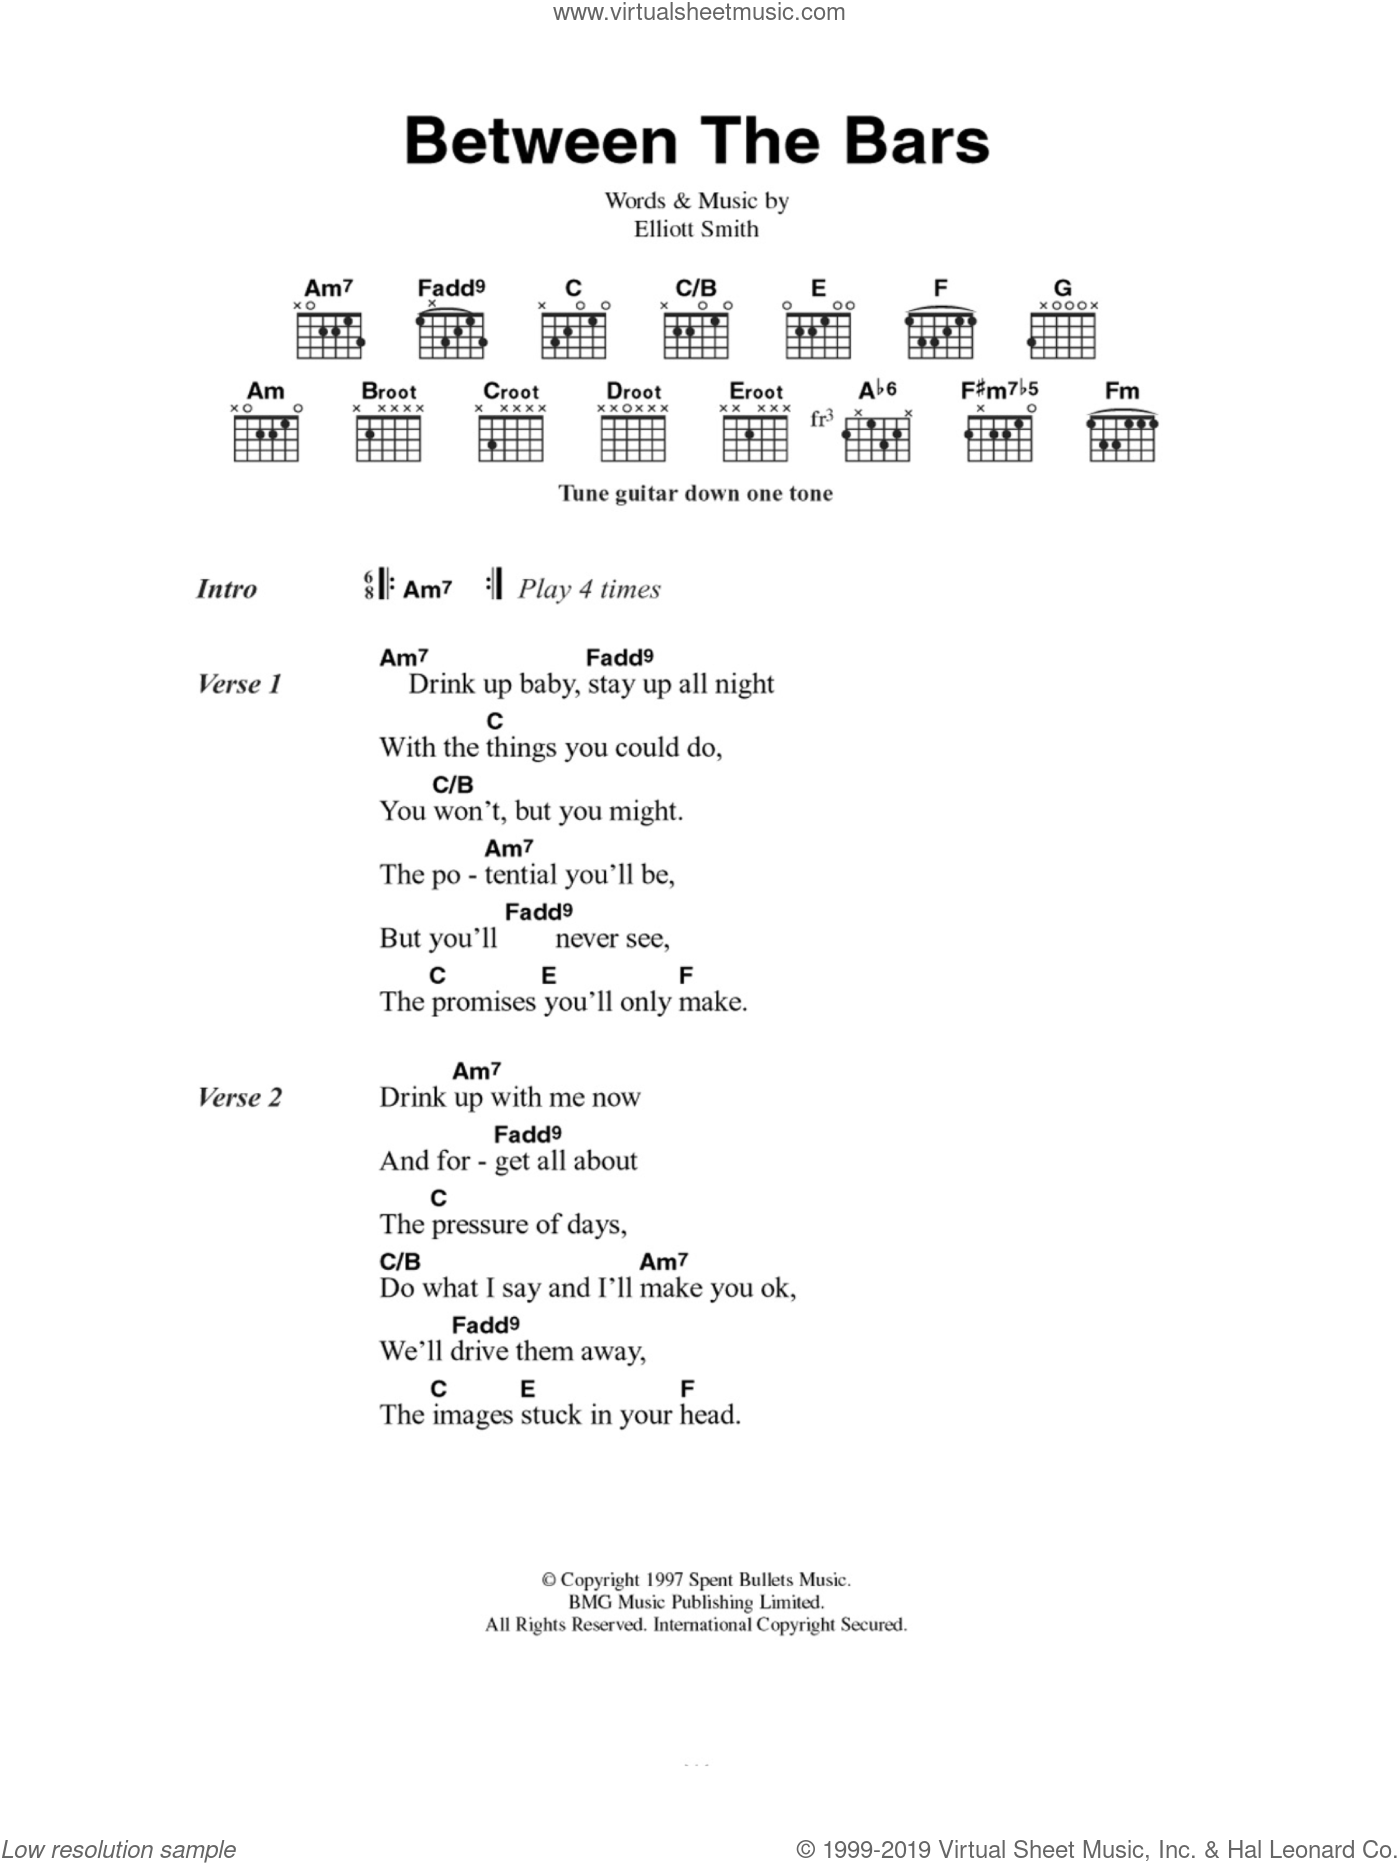 Between The Bars sheet music for guitar (chords) by Elliott Smith. Score Image Preview.